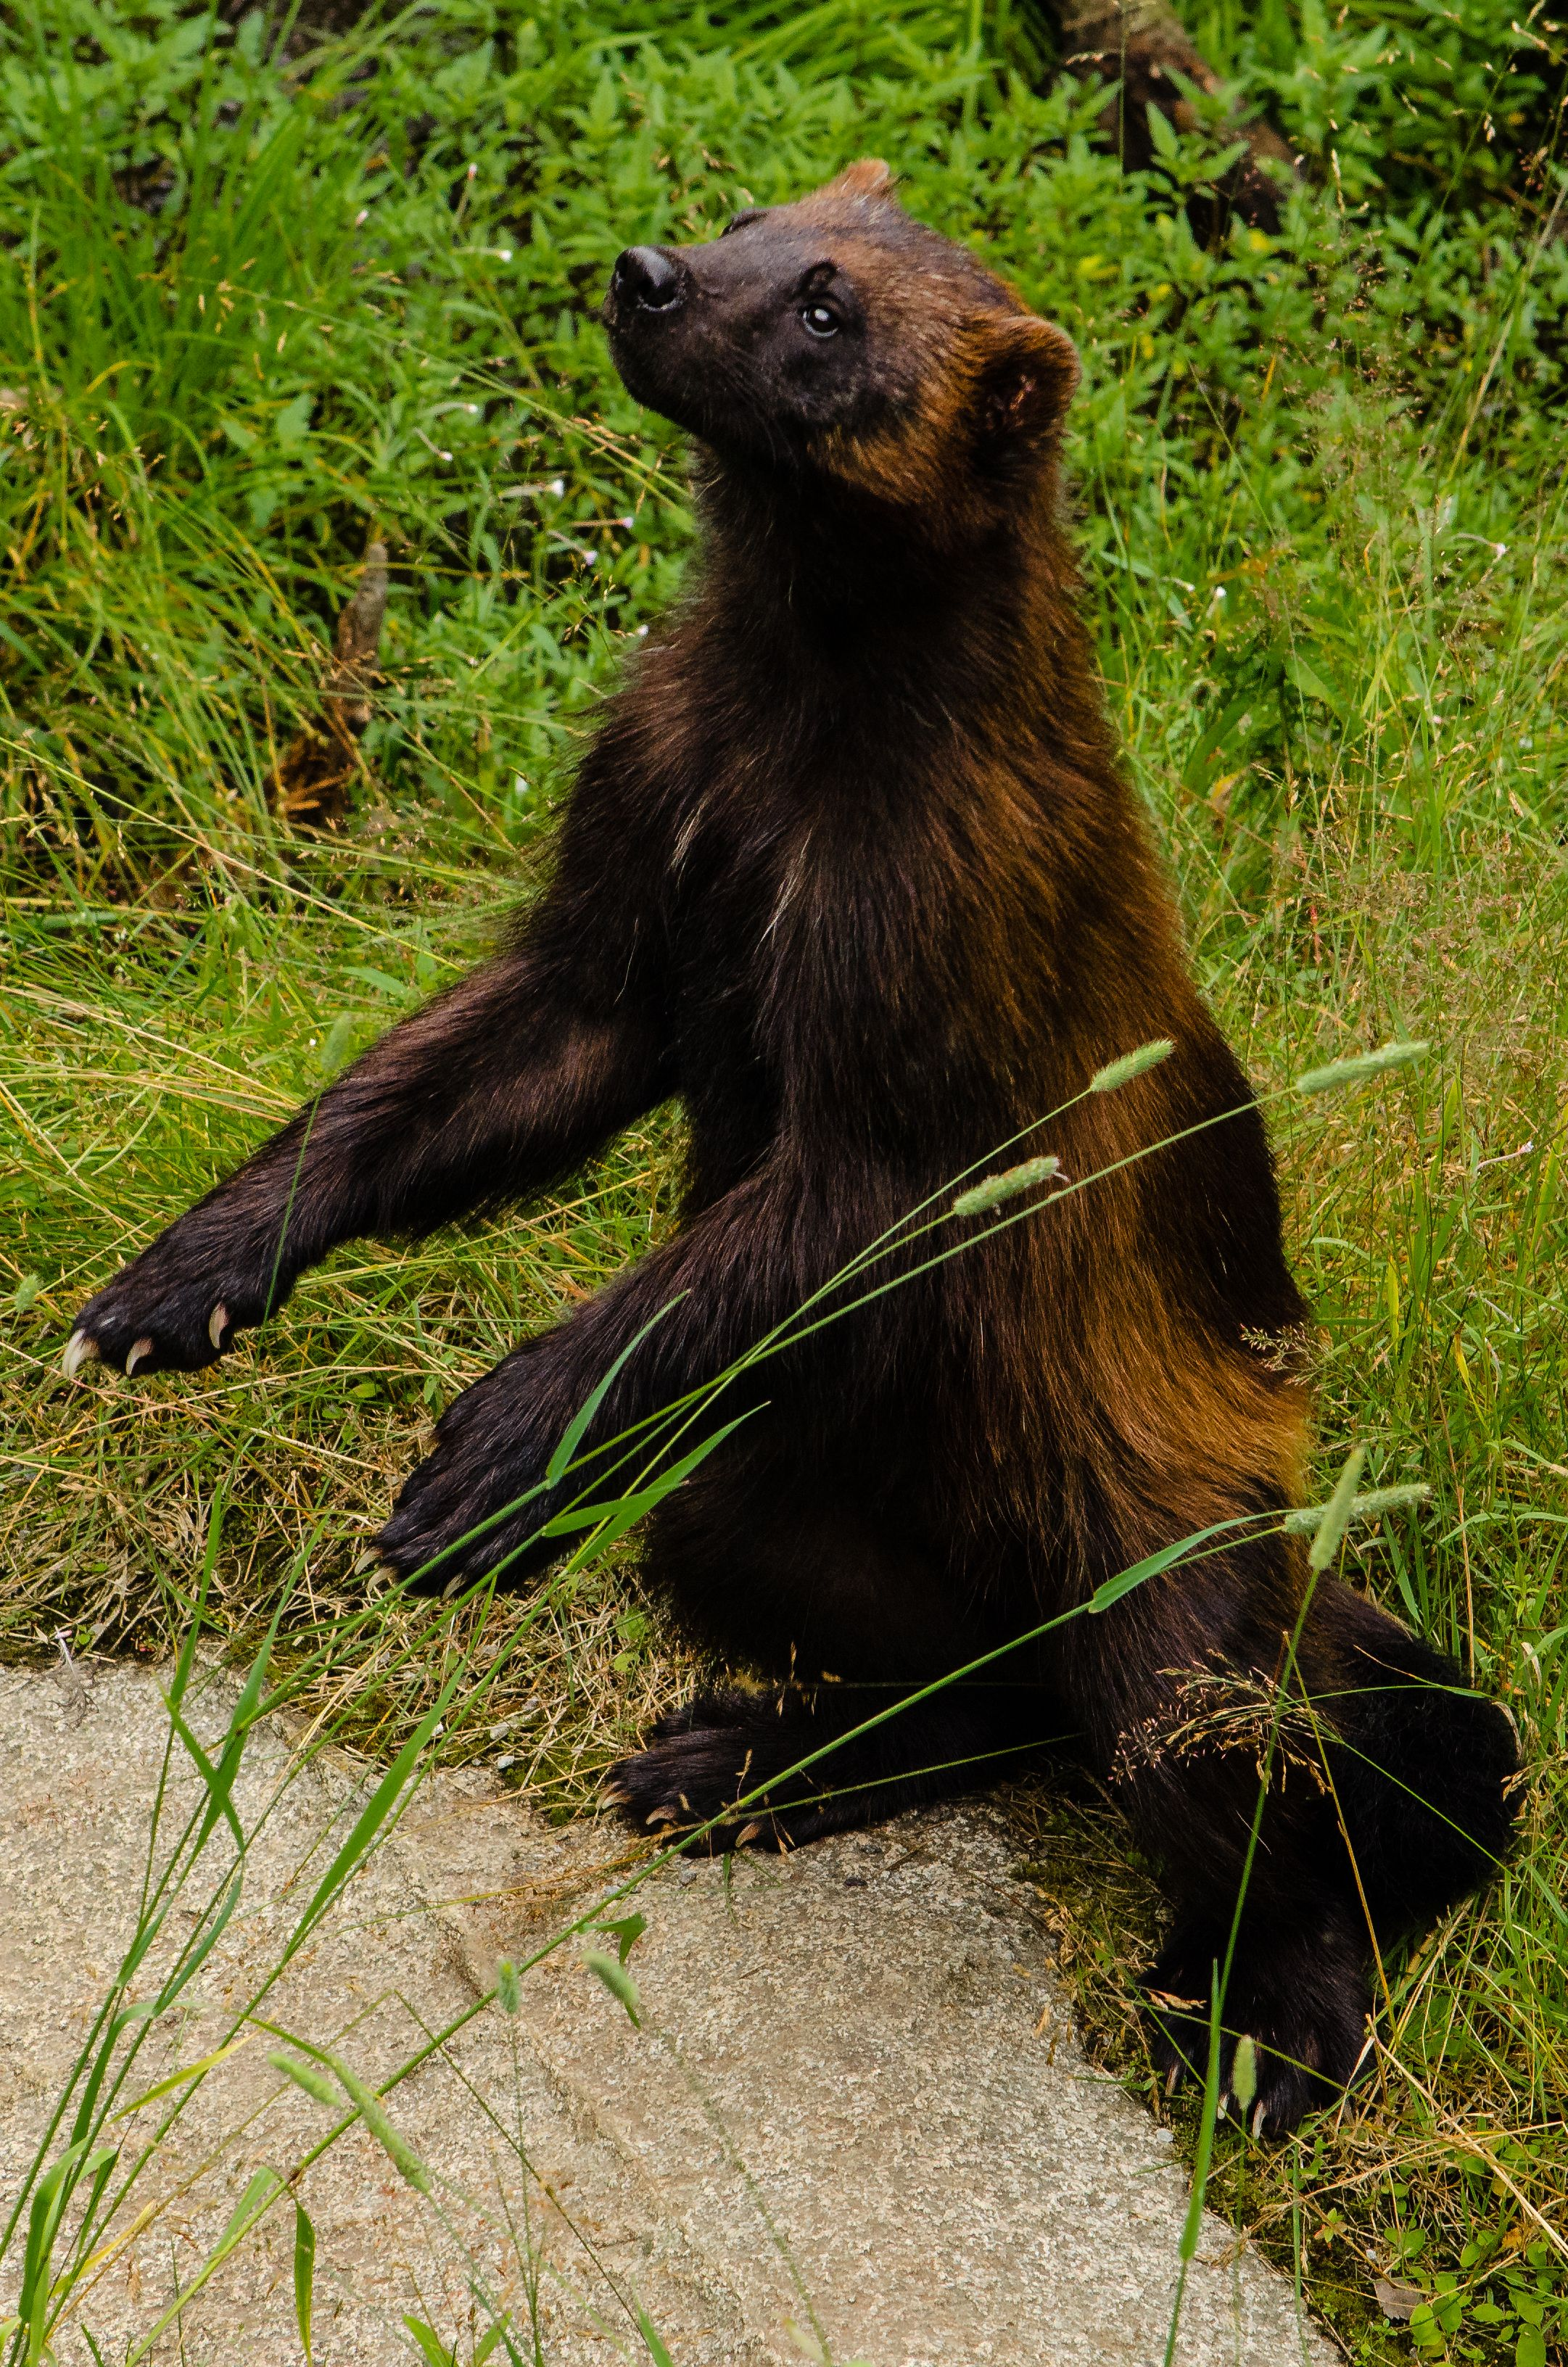 Wolverine (Gulo gulo). Finland. Photo by J. Partanen (at